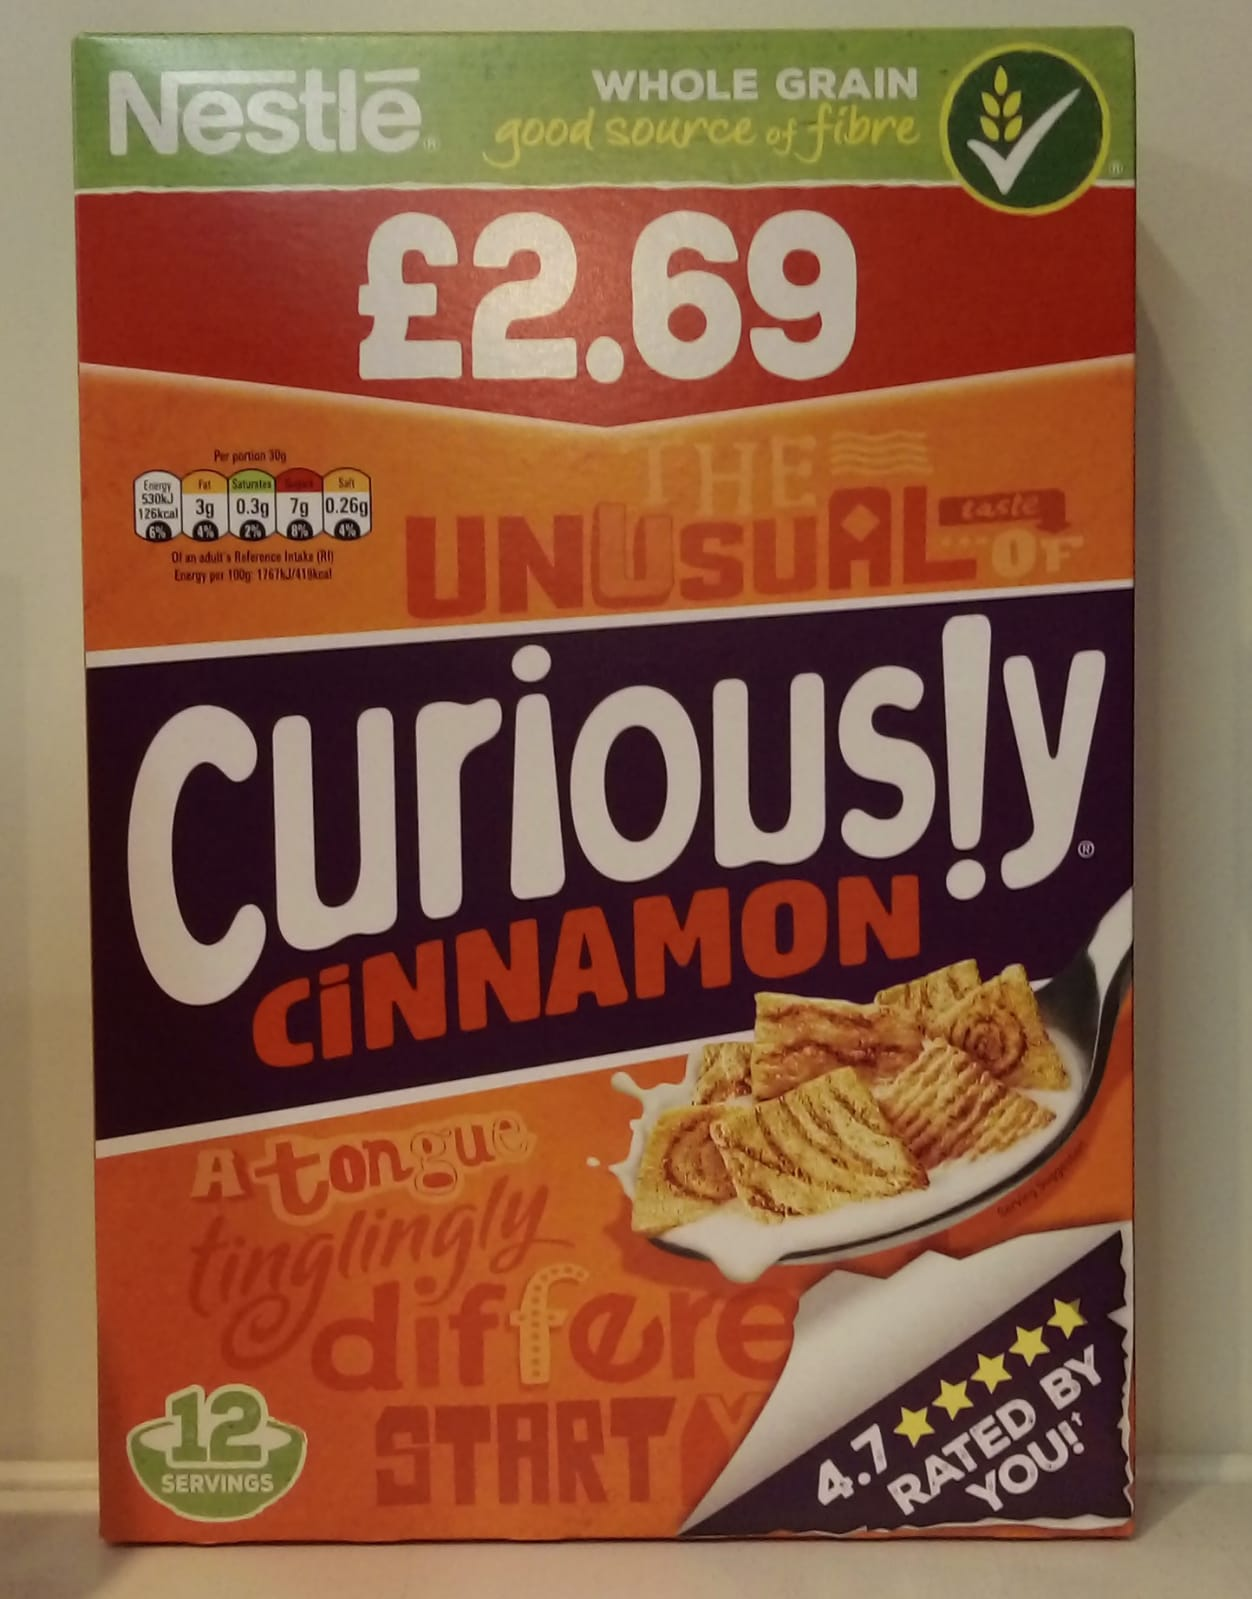 Curiously cinnamon cereal